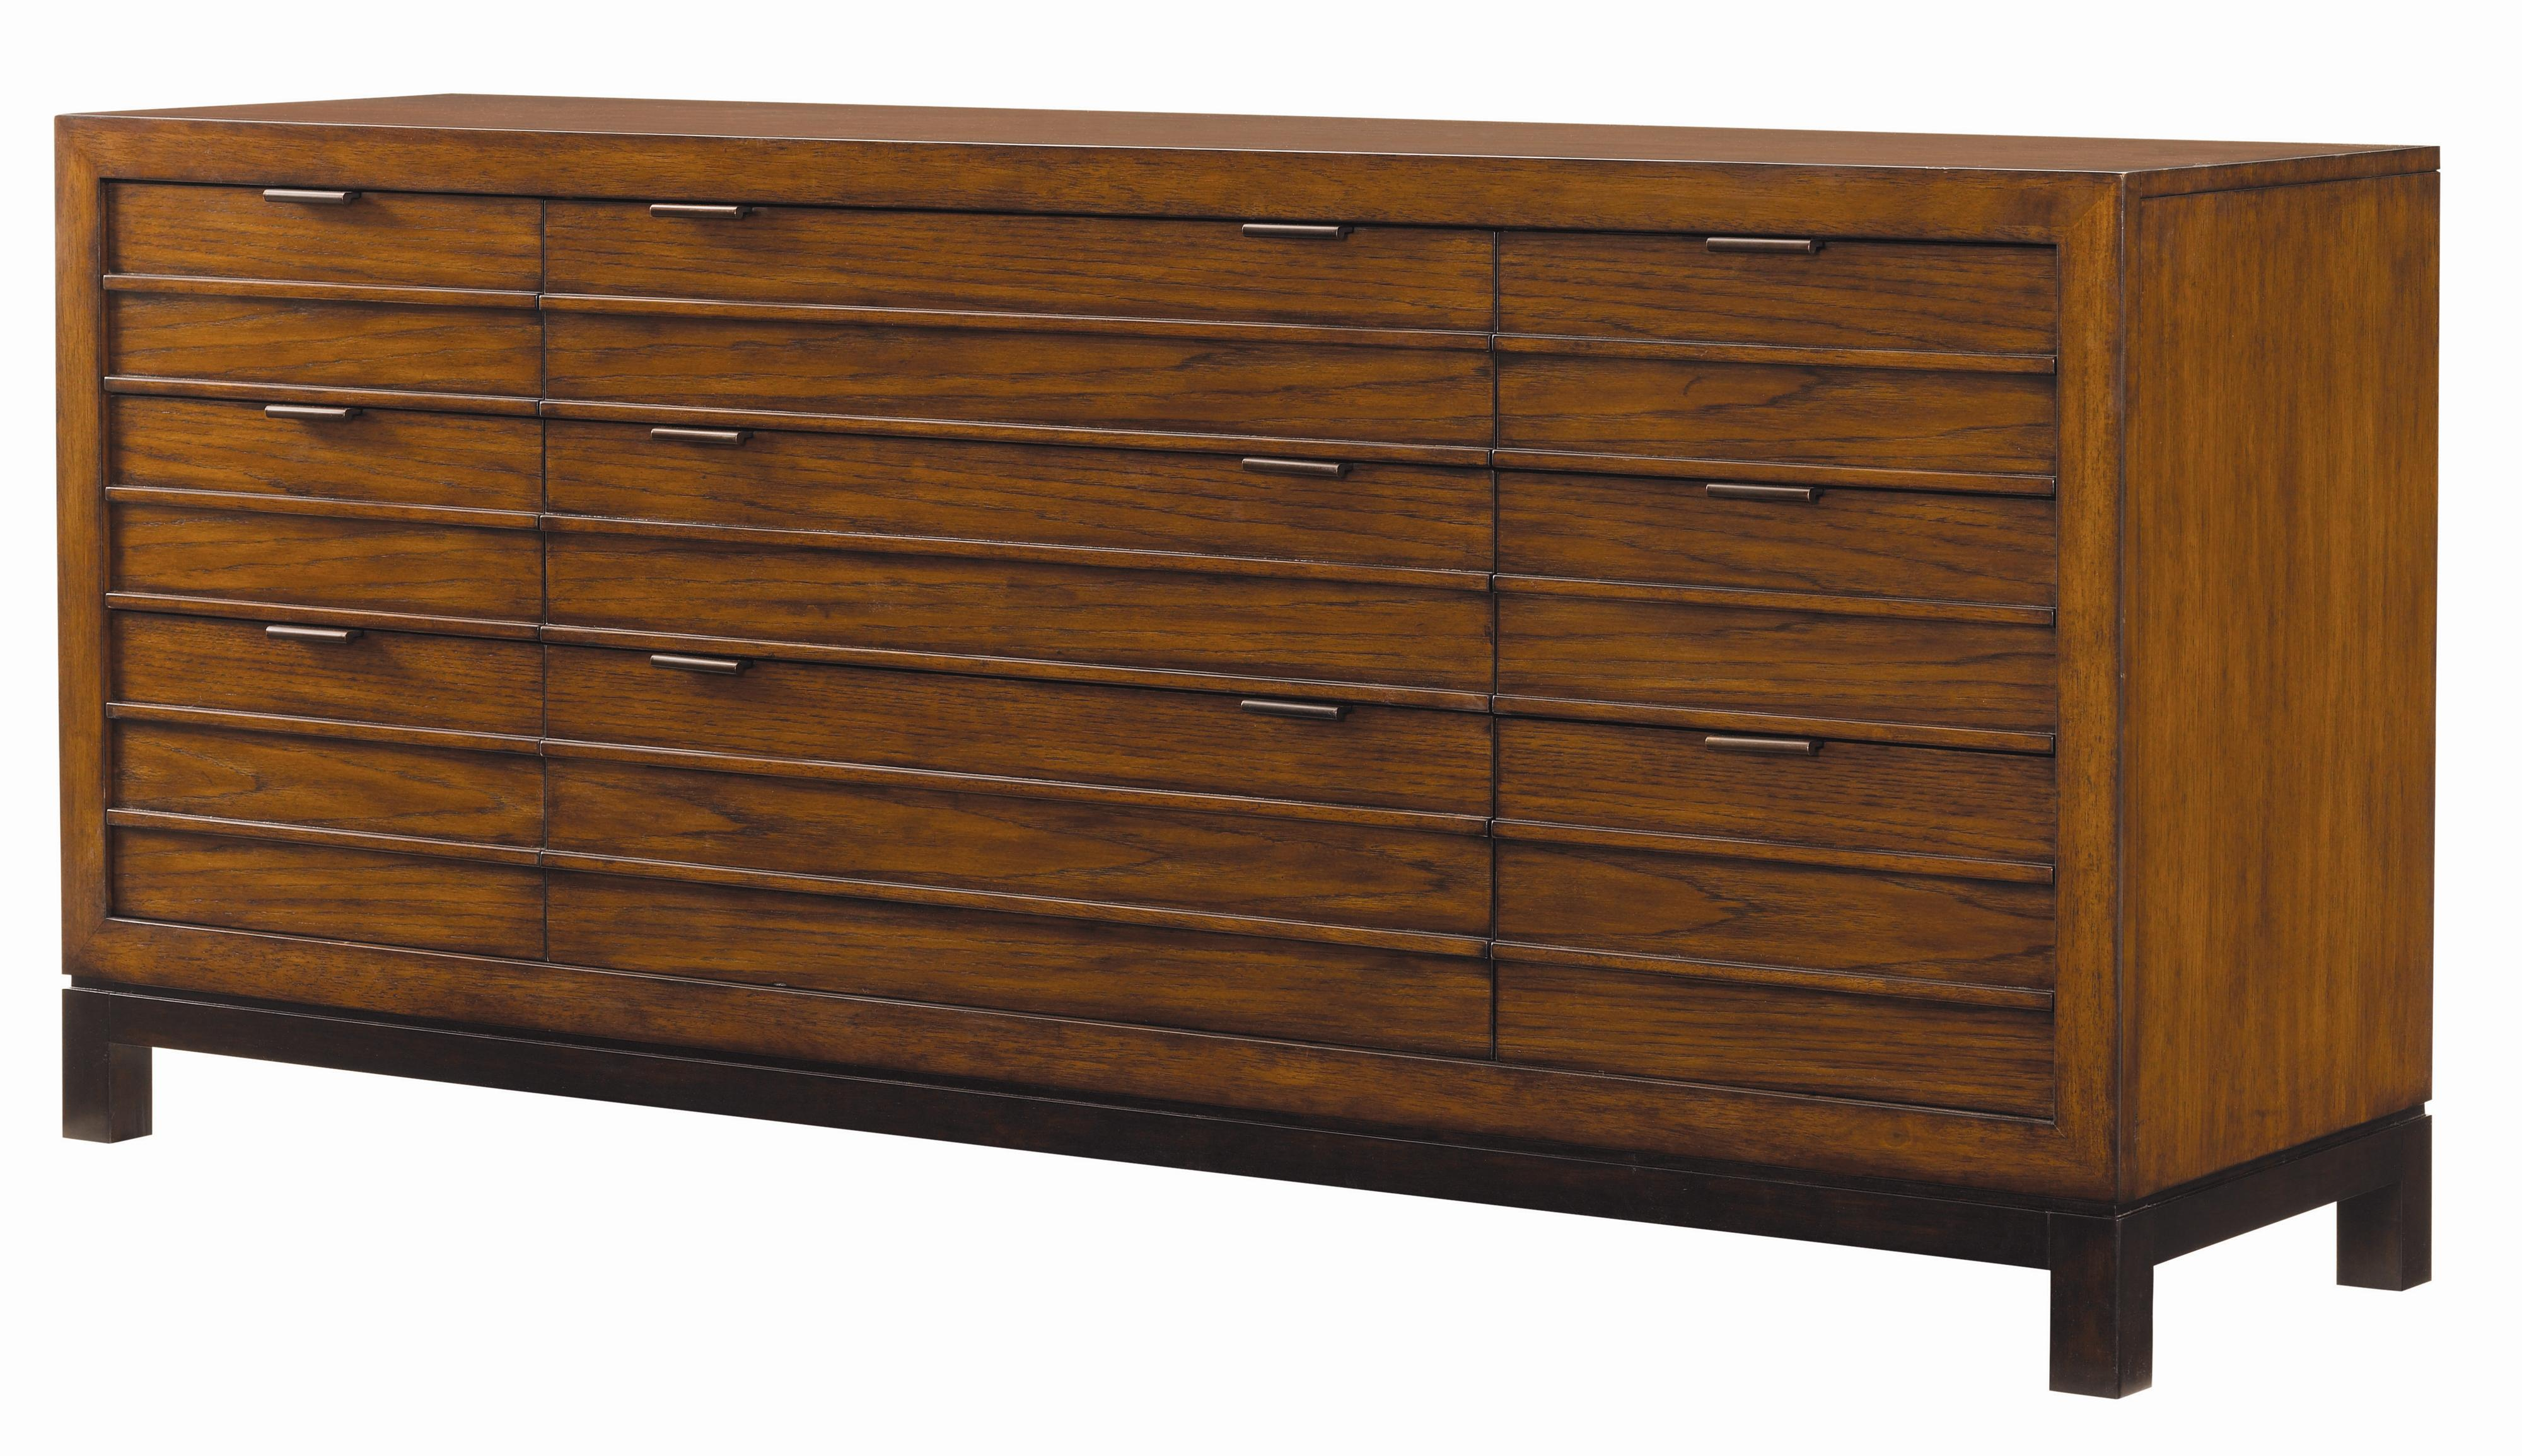 Ocean Club Oceania Dresser by Tommy Bahama Home at Baer's Furniture